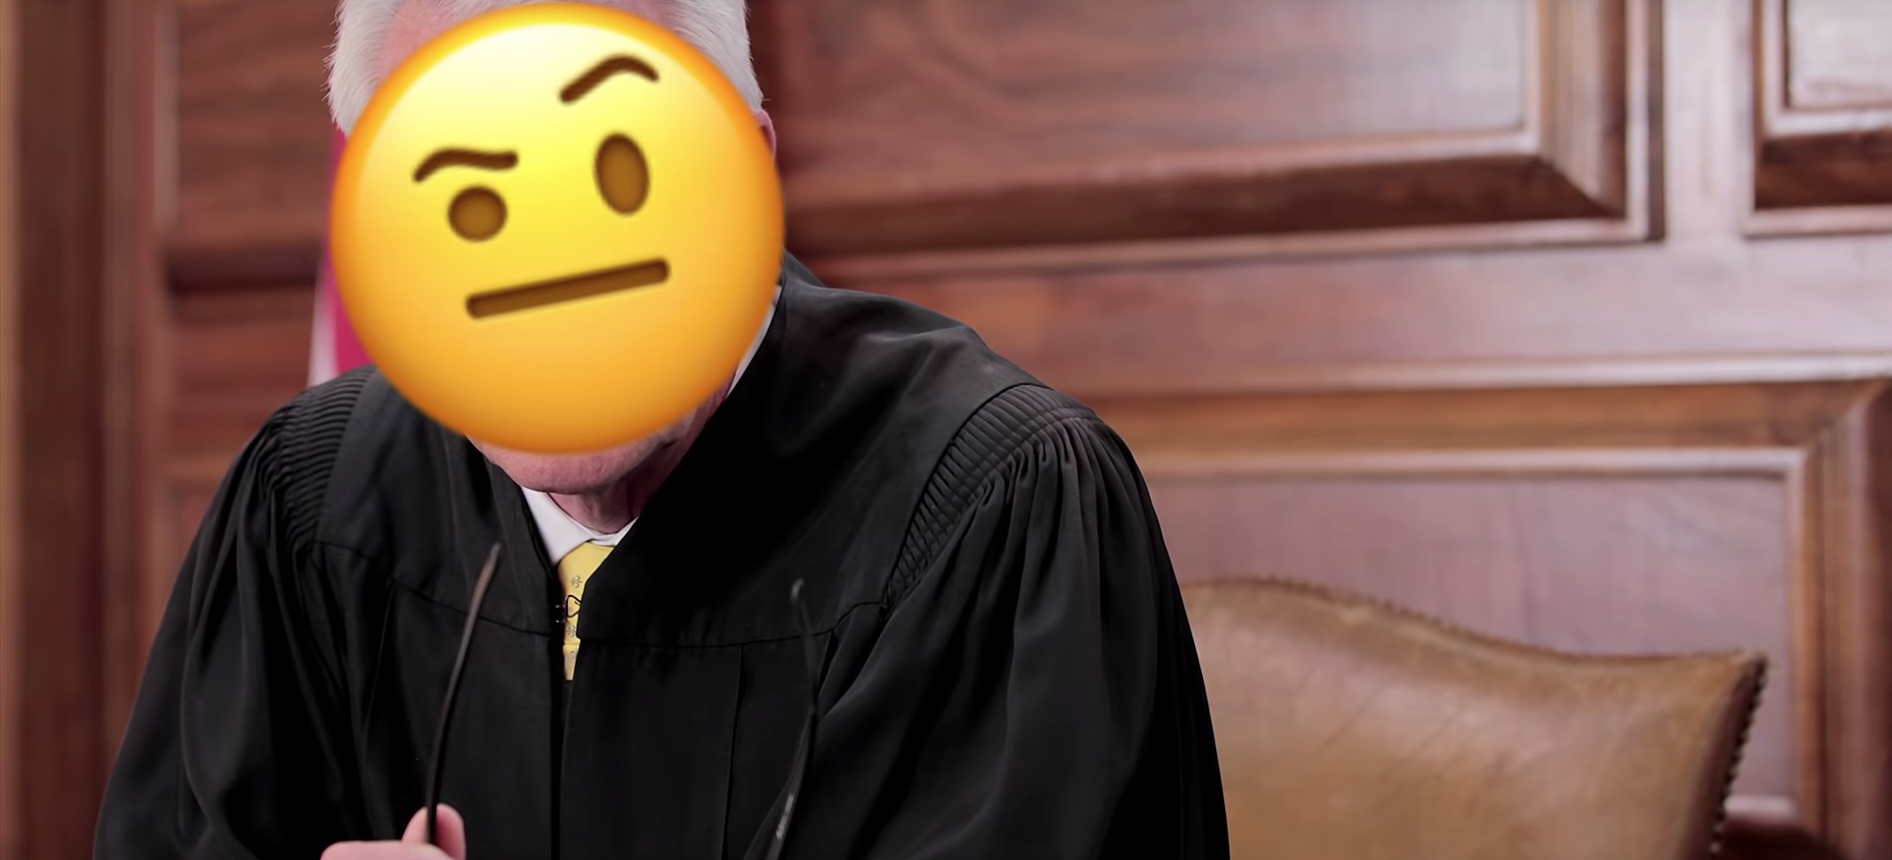 How Sending The Wrong Emoji Can Get You Sent To Jail